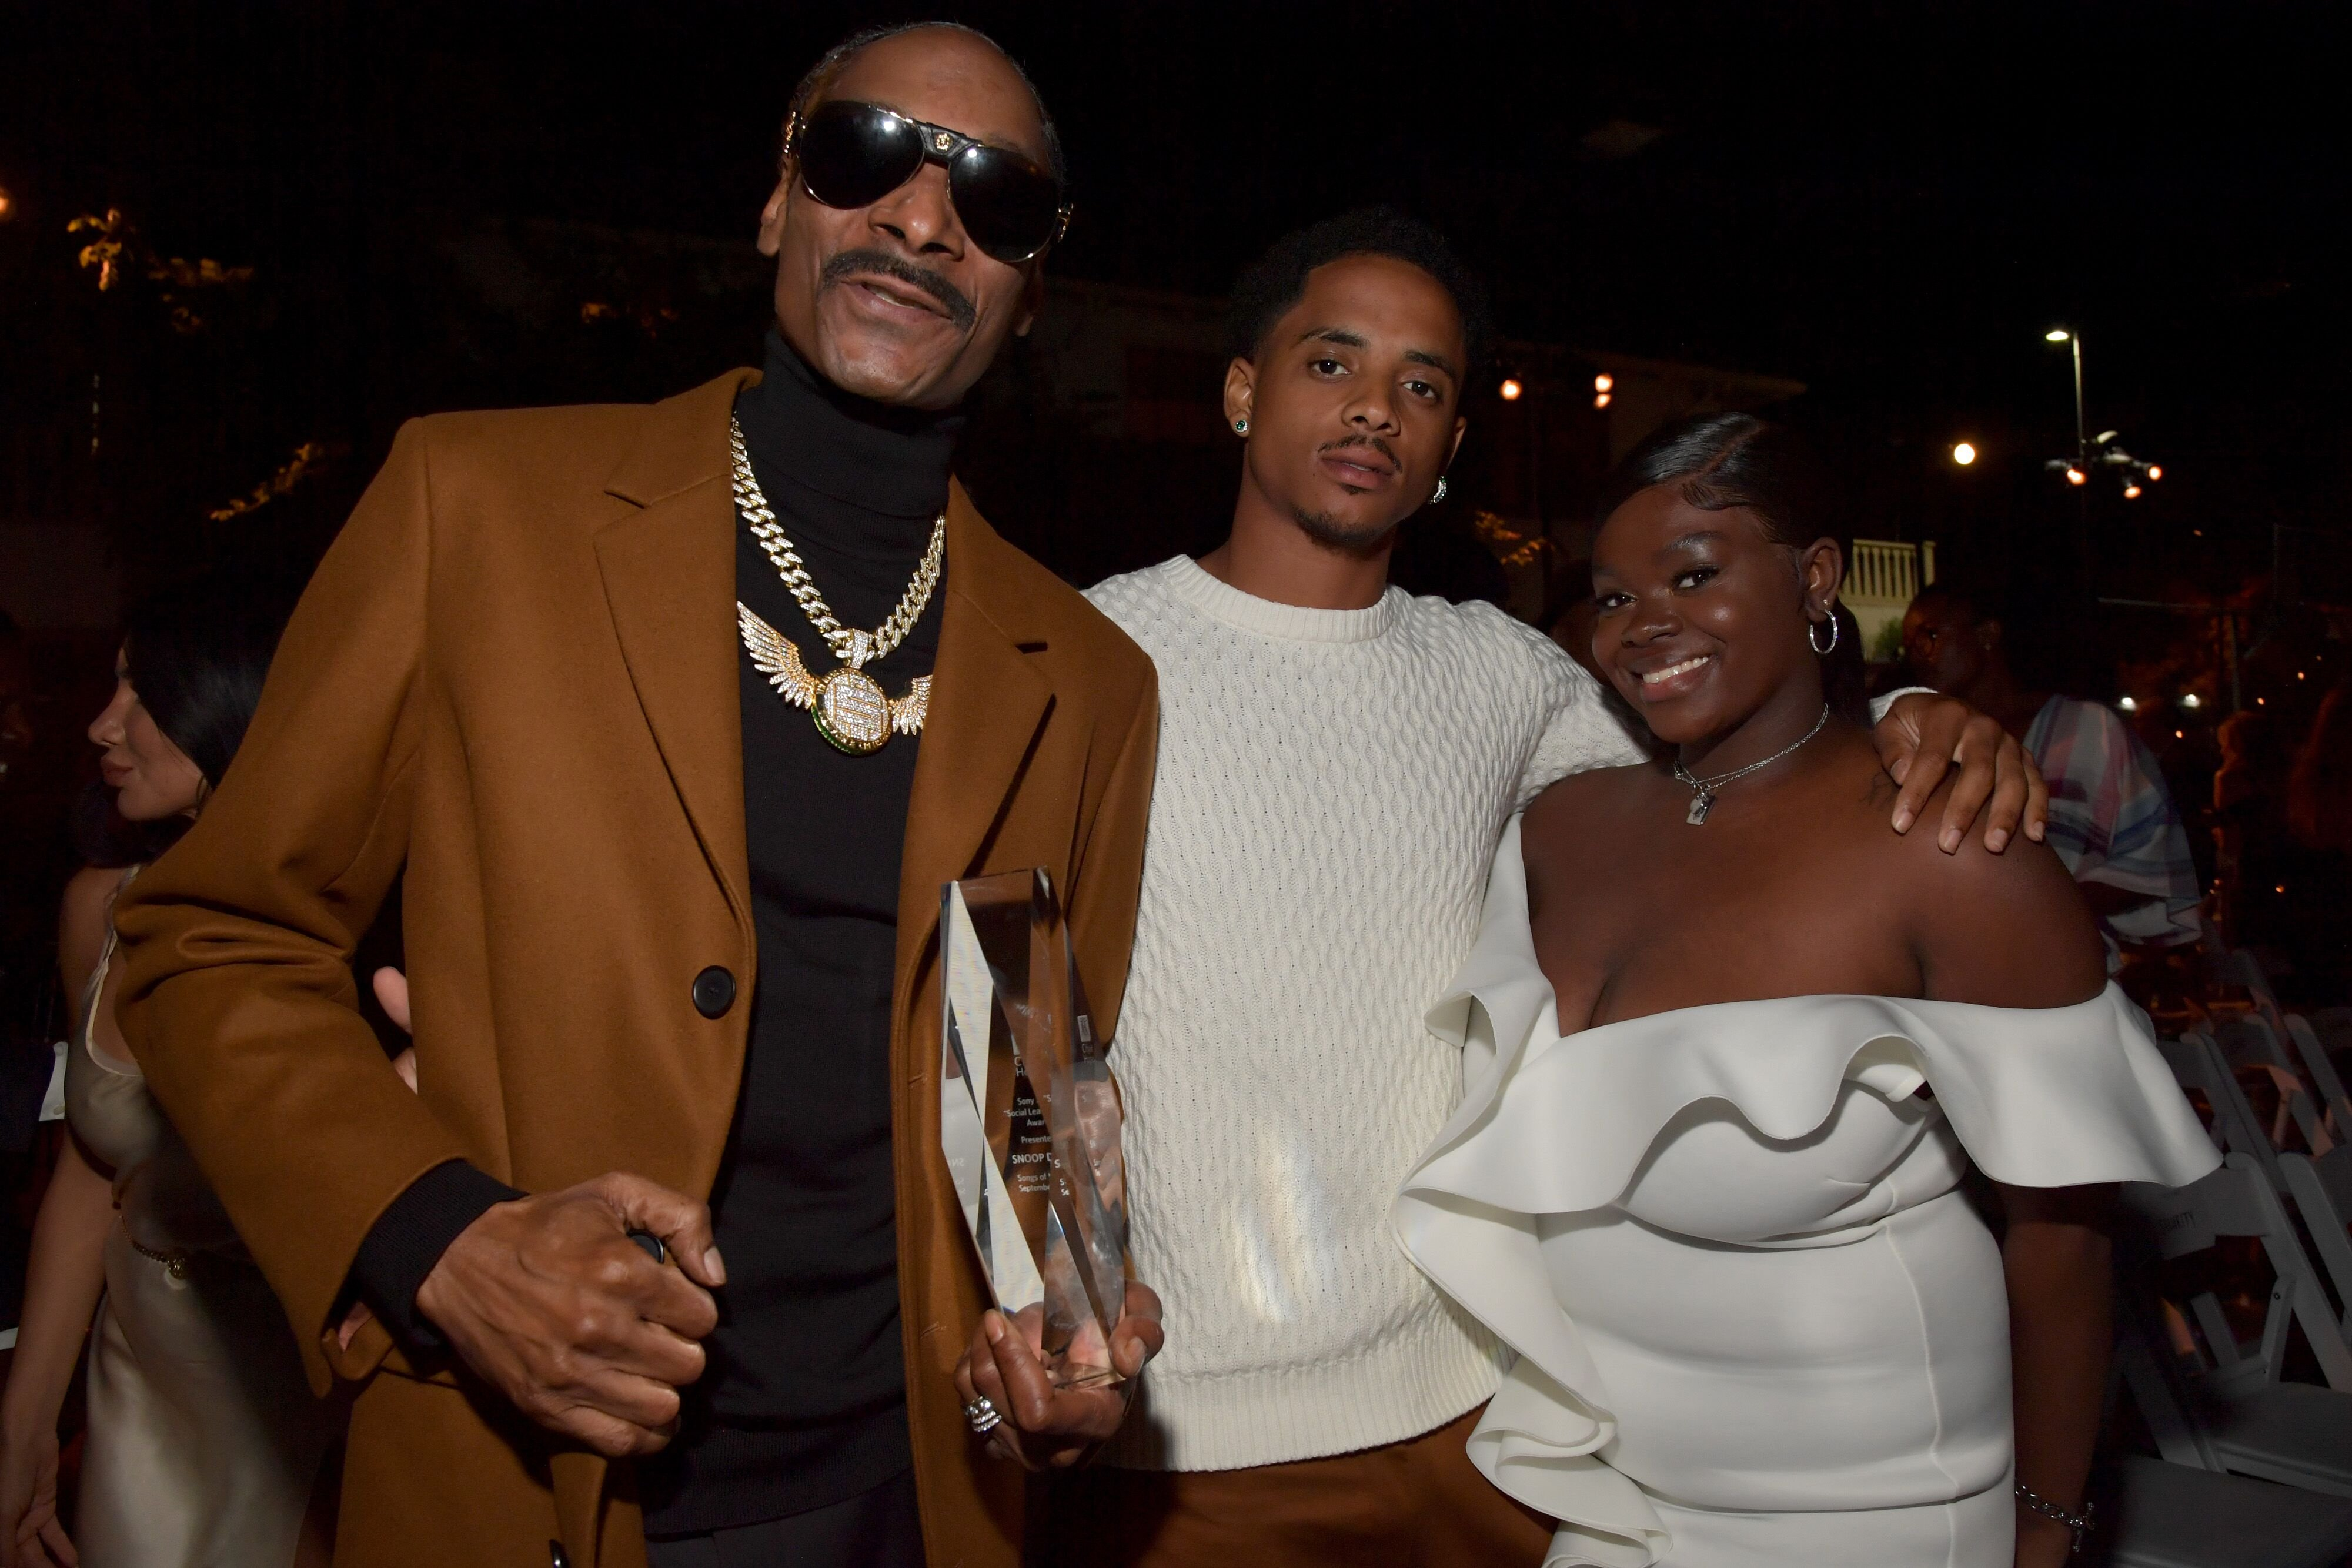 Snoop Dogg, Cordell Broadus and Cori Broadus attend City of Hope: 15th Annual Songs of Hope on September 19, 2019 in Sherman Oaks, California. | Source: Getty Images